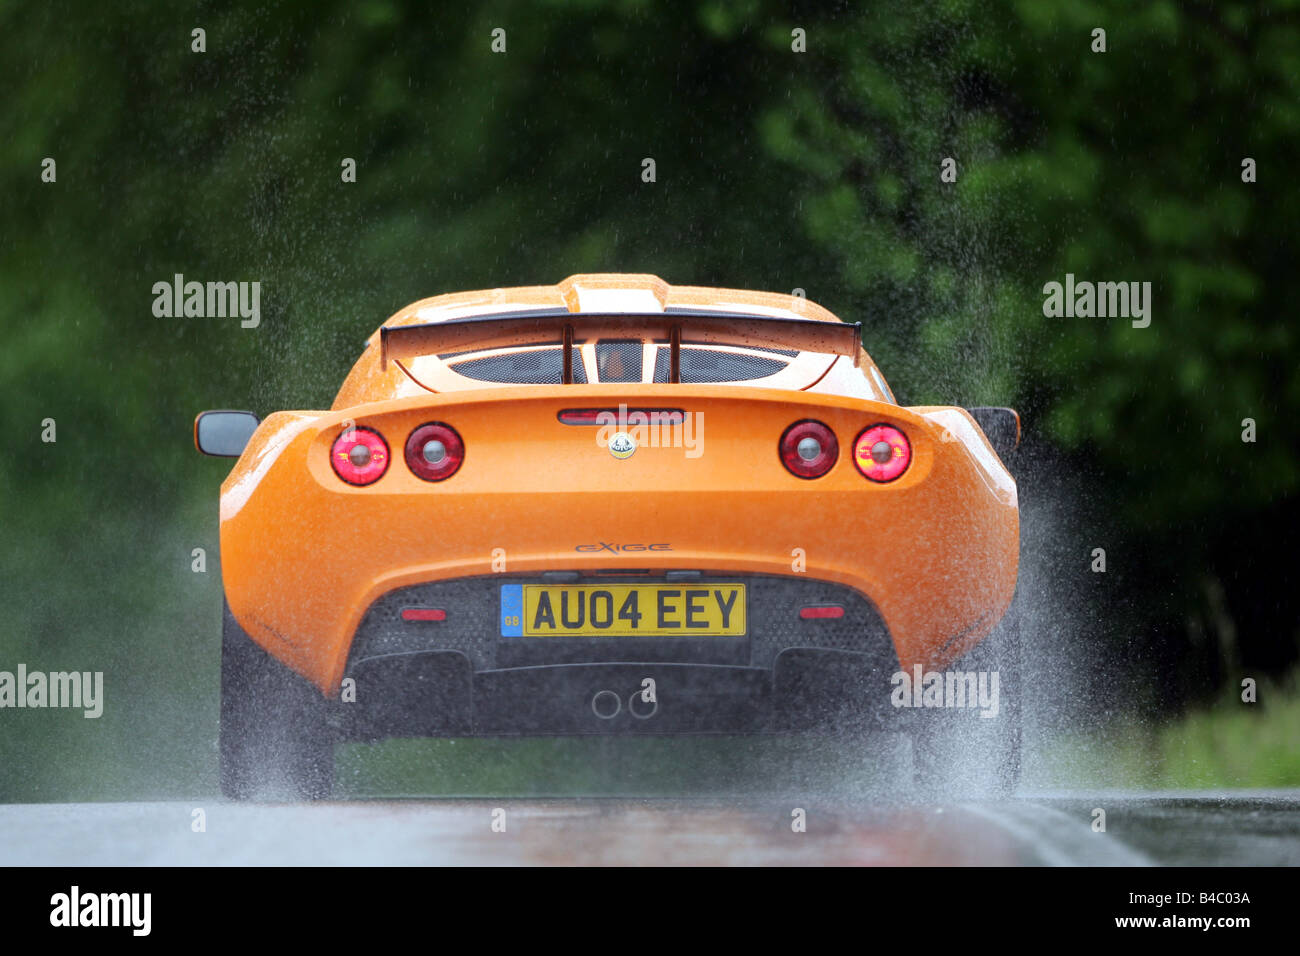 Car lotus exige model year 2004 roadster orange coupecoupe car lotus exige model year 2004 roadster orange coupecoupe driving rear view country road rain wet highway photogr vanachro Images